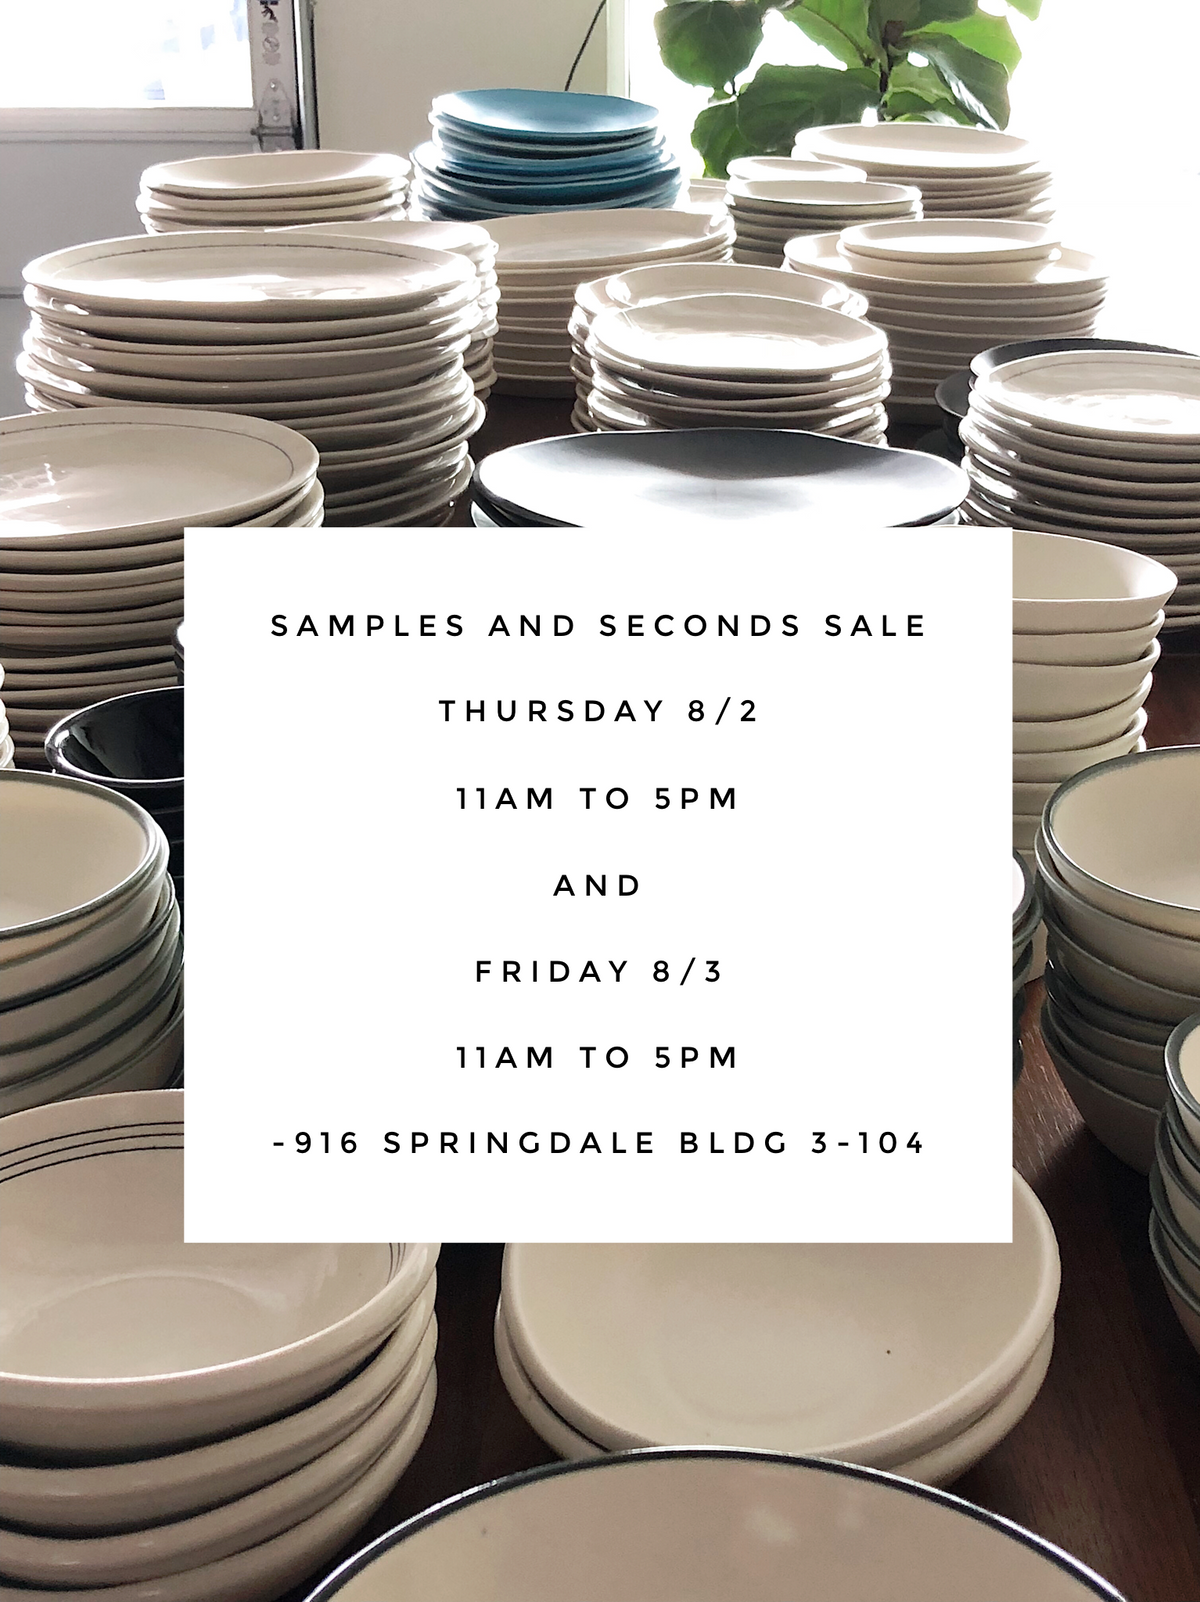 8/2 & 8/3: Samples and Seconds Sale